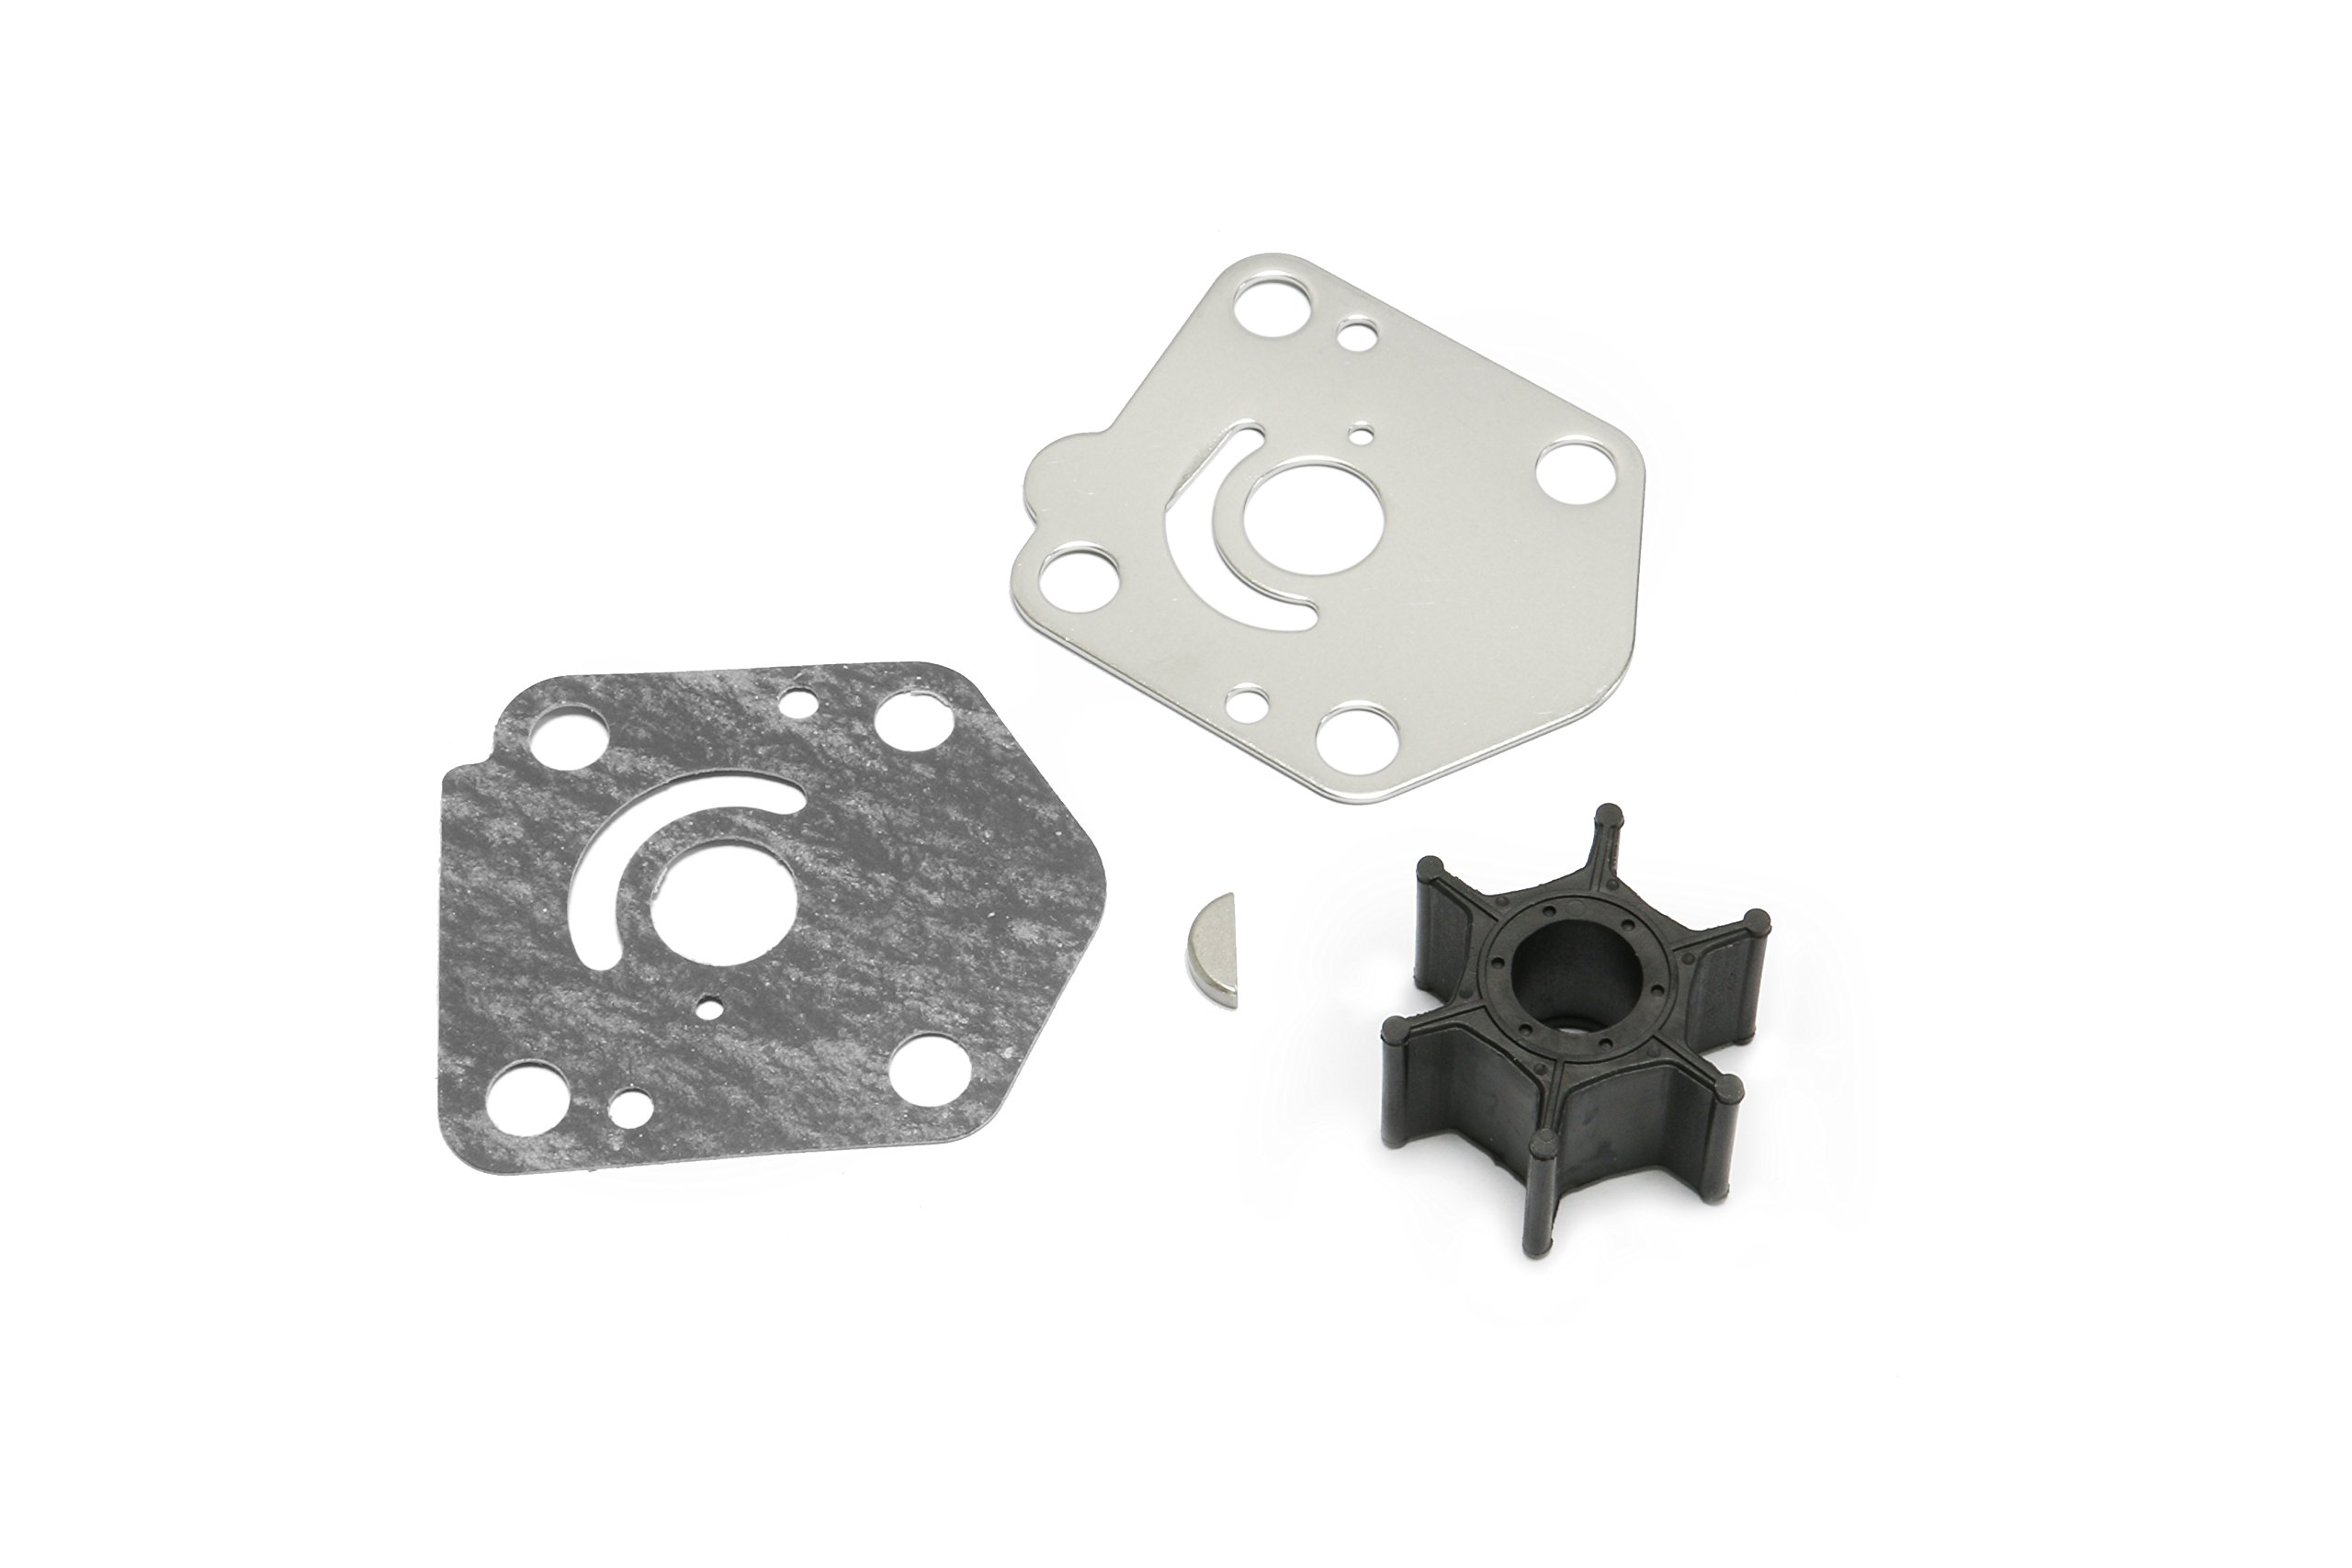 Createshao Outboard Water Pump Impeller for Suzuki Boat Engine Repair Kit 18-3256 17400-93951 DF9.9 DF15 DT9.9 DT15 9.9HP 15HP